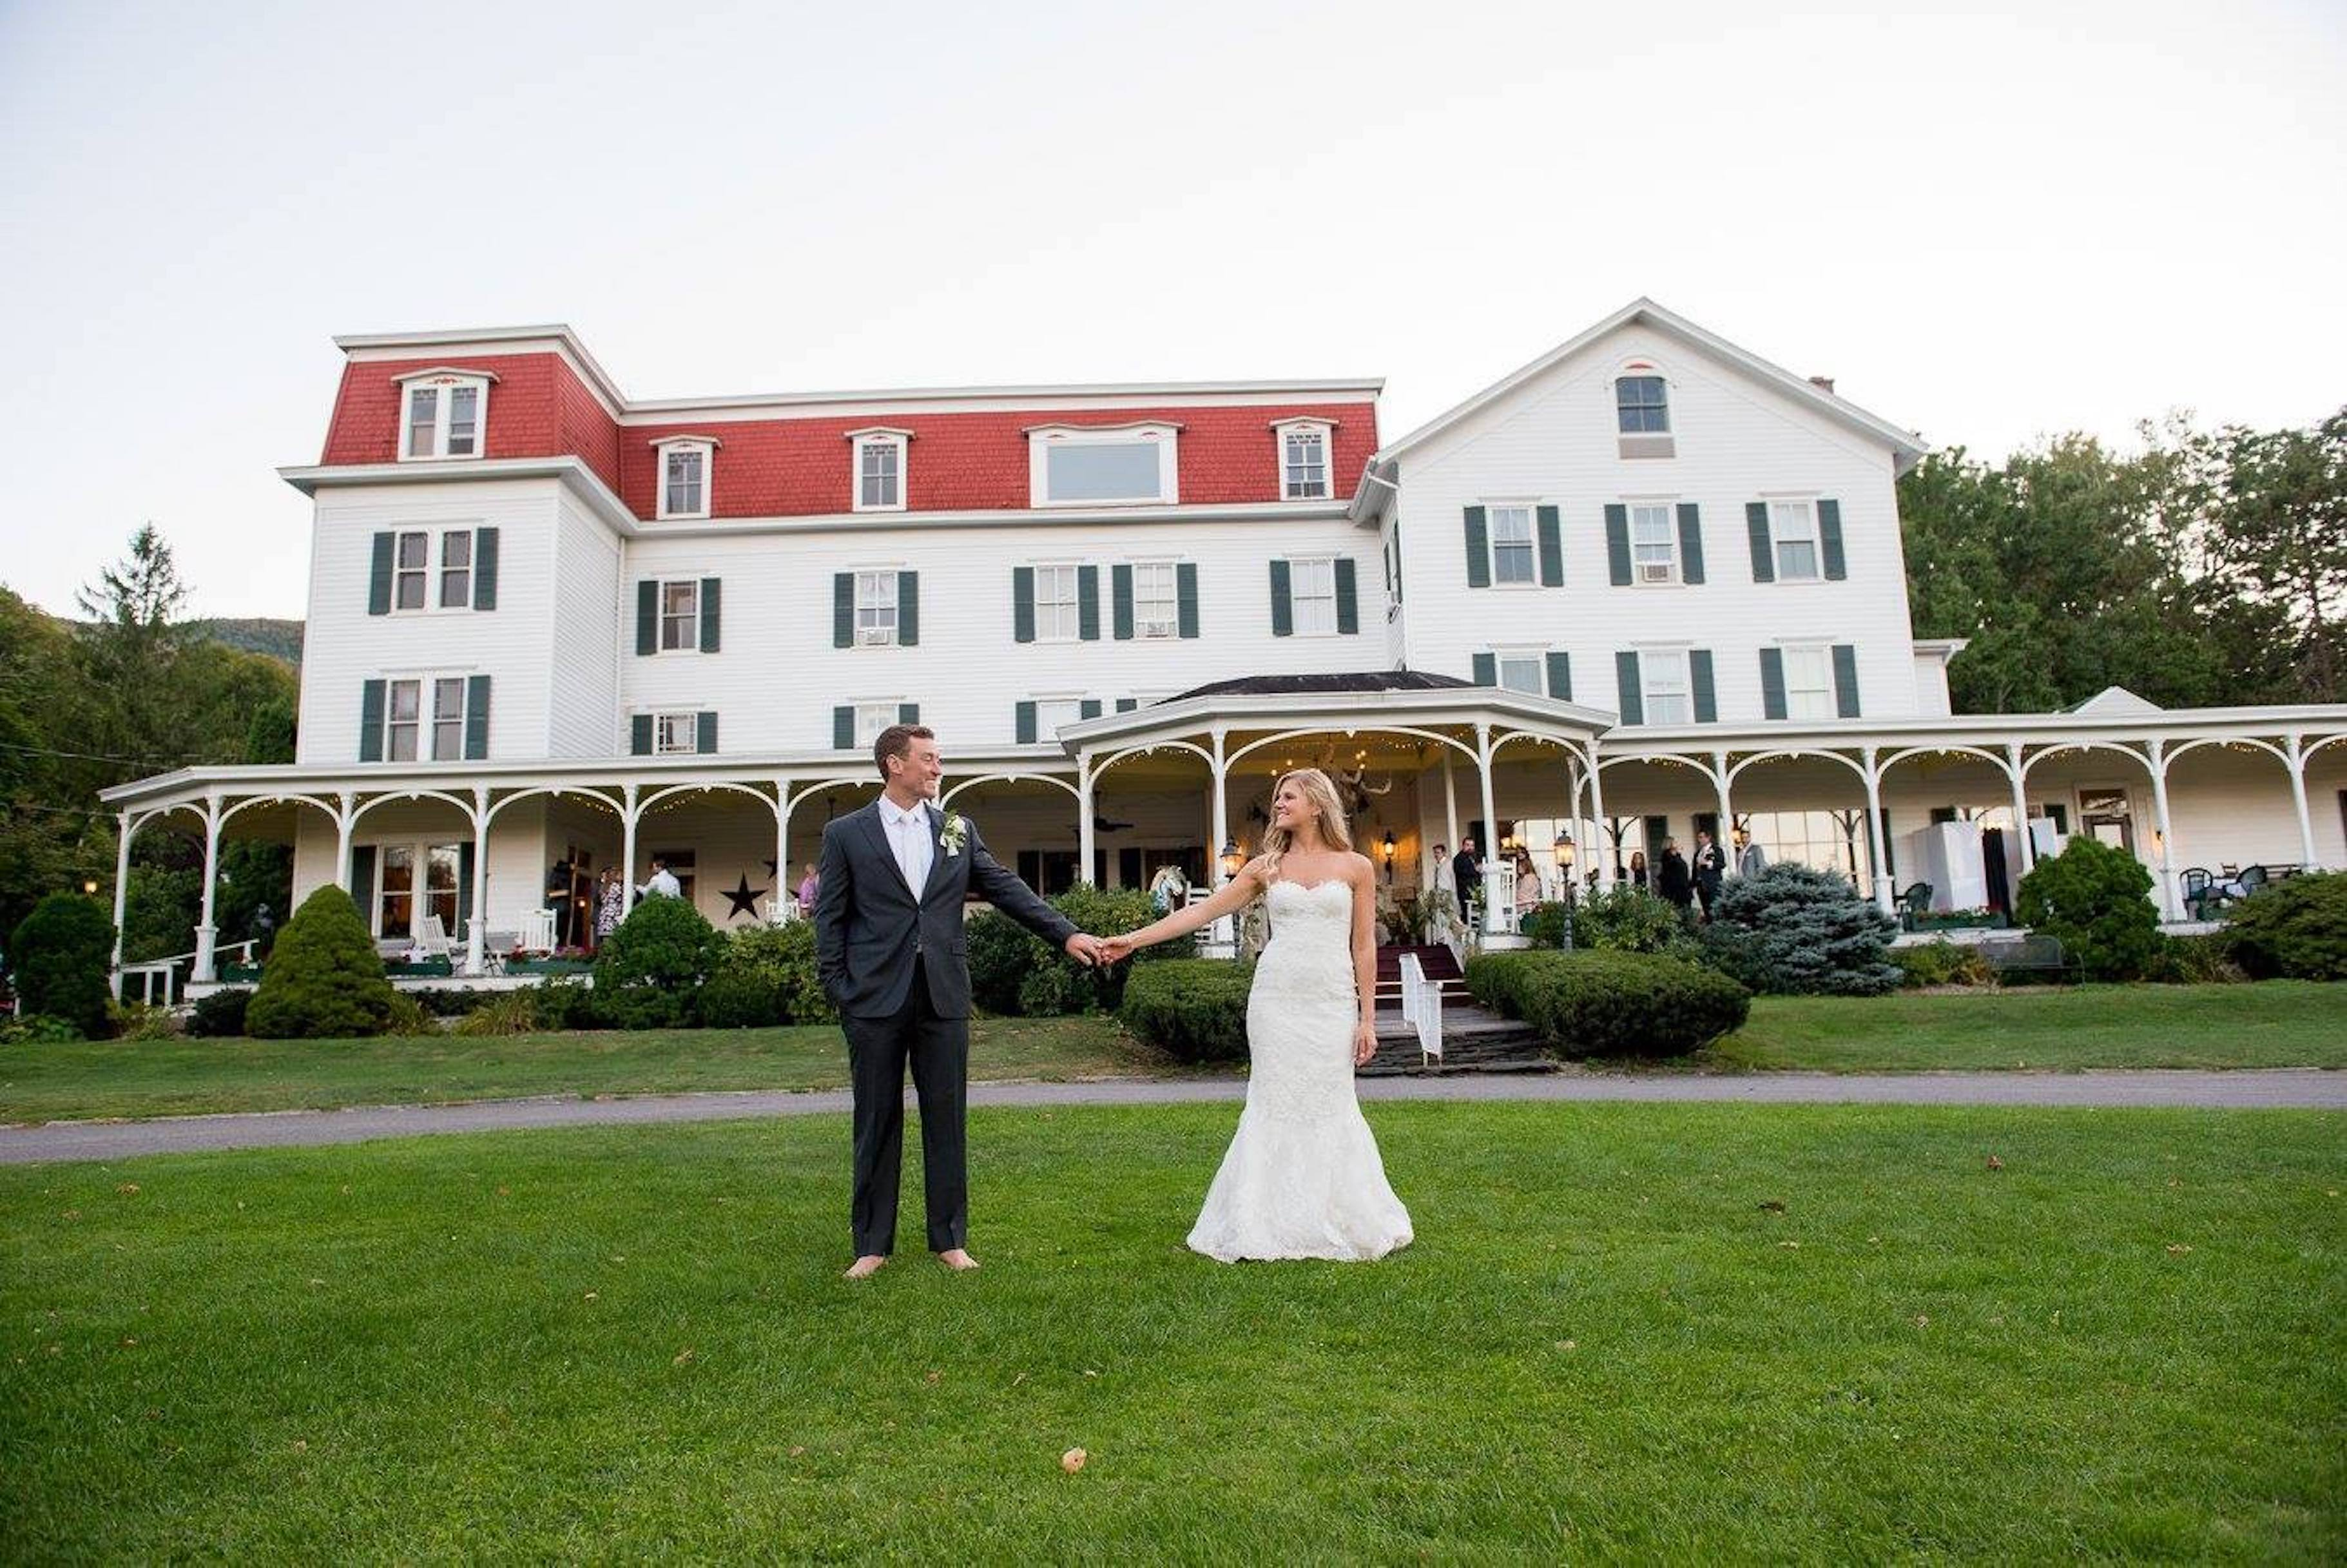 Bride and Groom standing on the lawn.